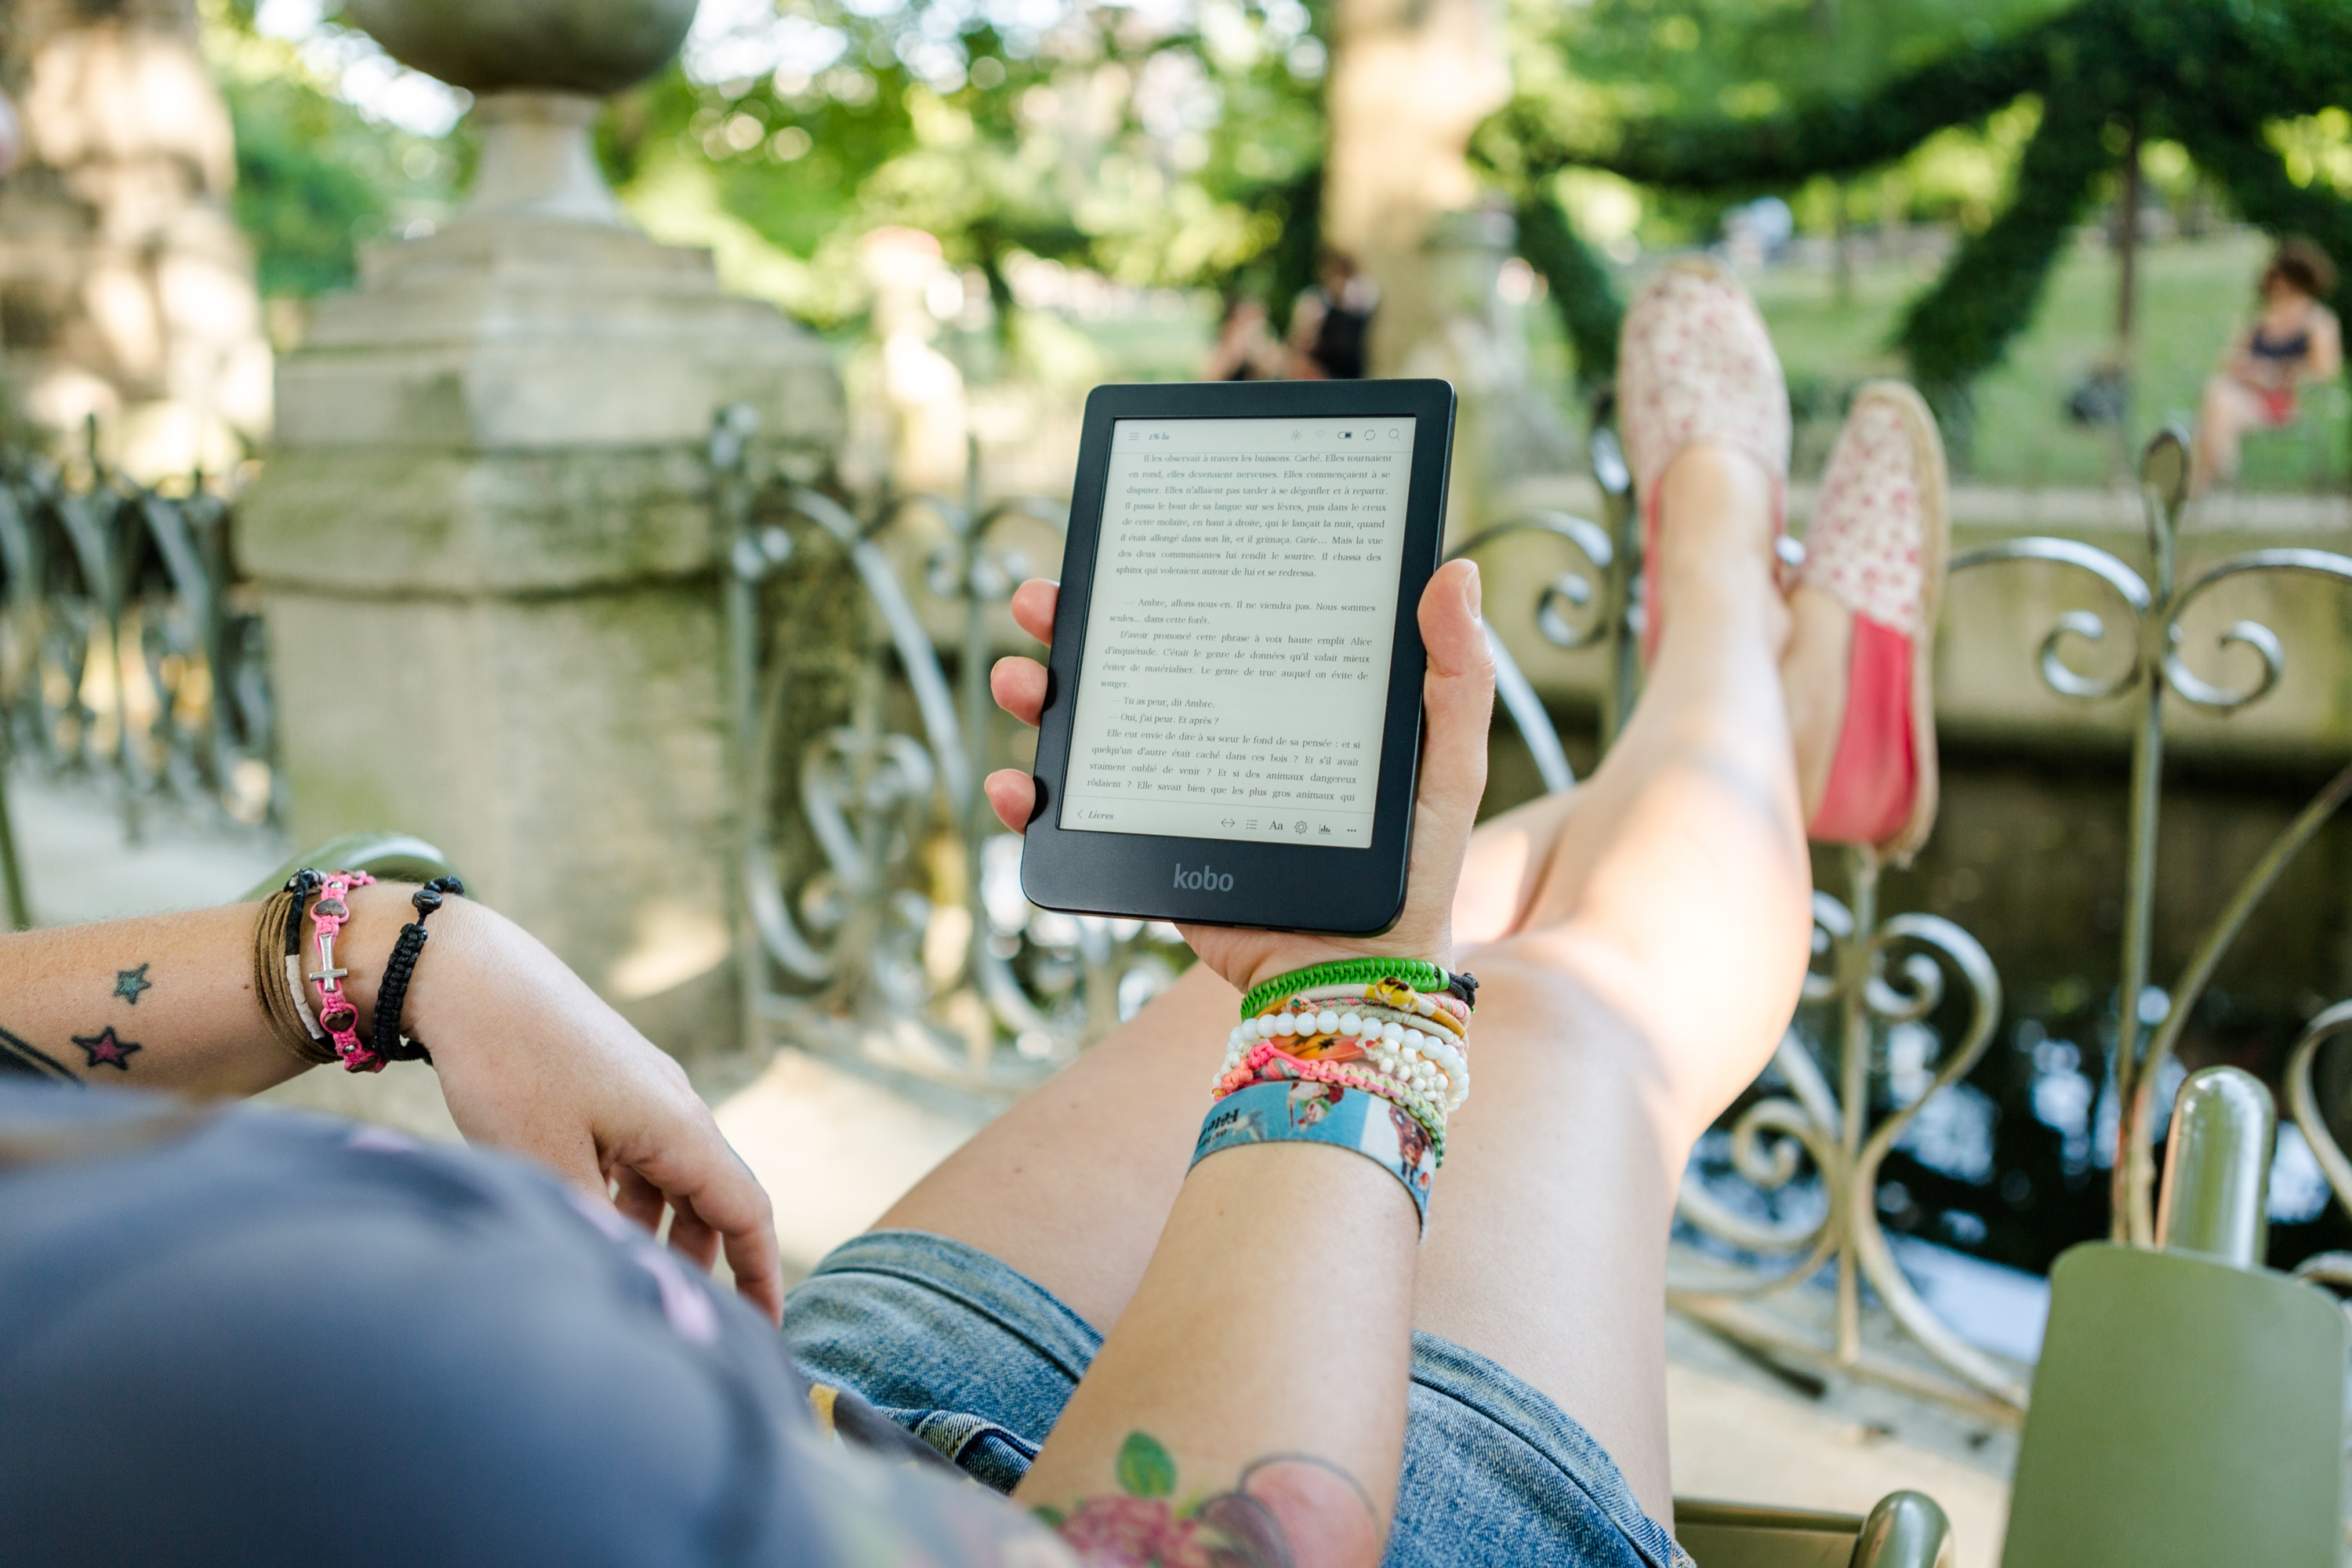 Self-publishing News: A New Business Model For Authors?